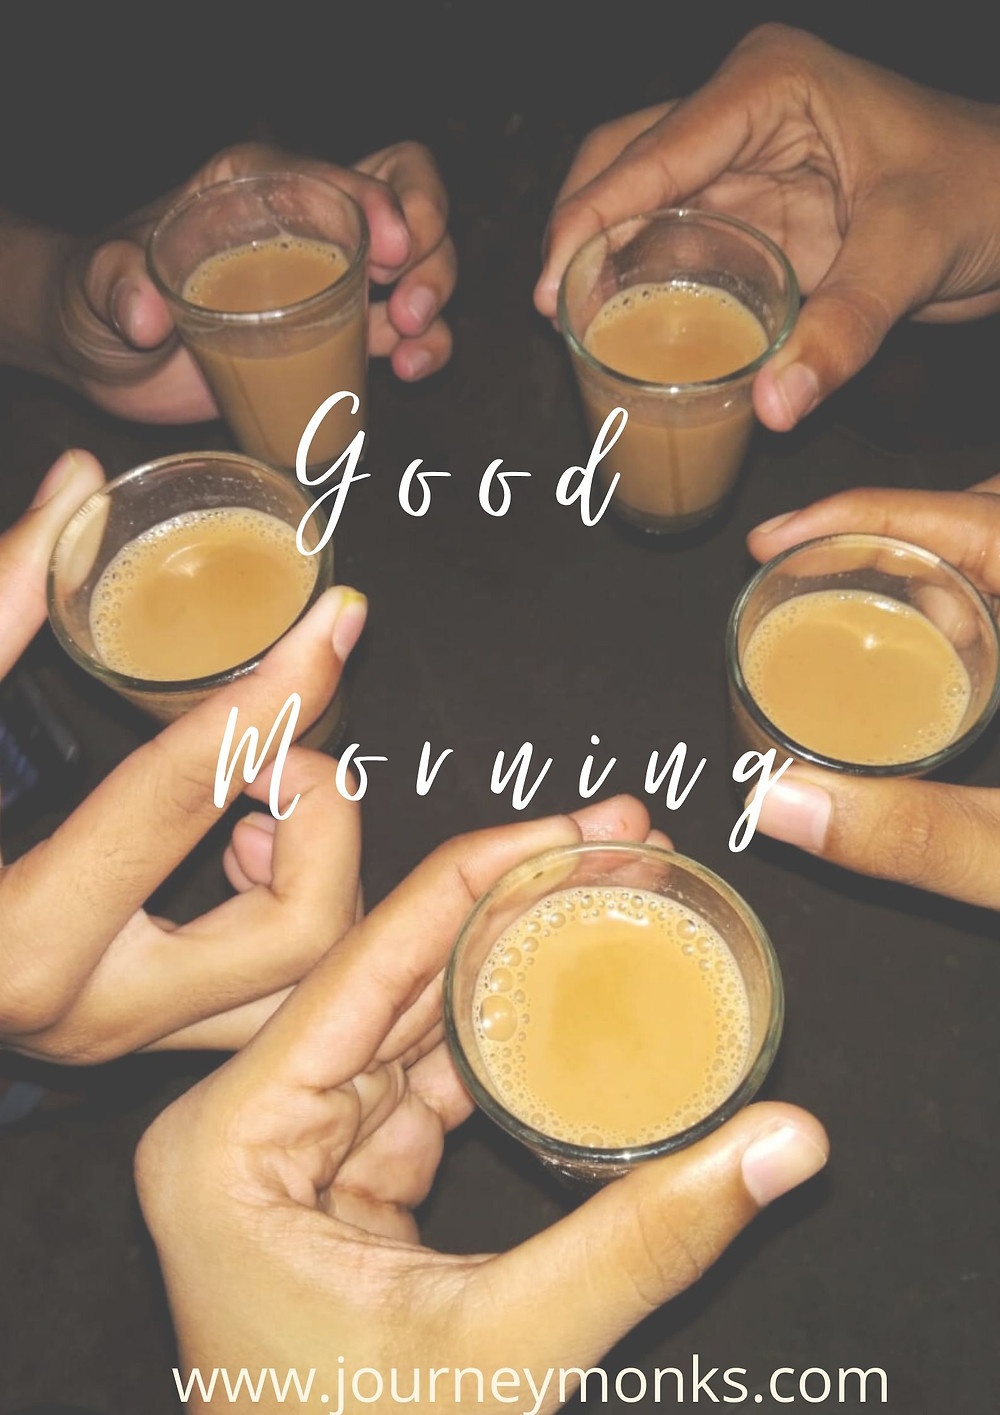 start  day with chai,good morning image with chai.